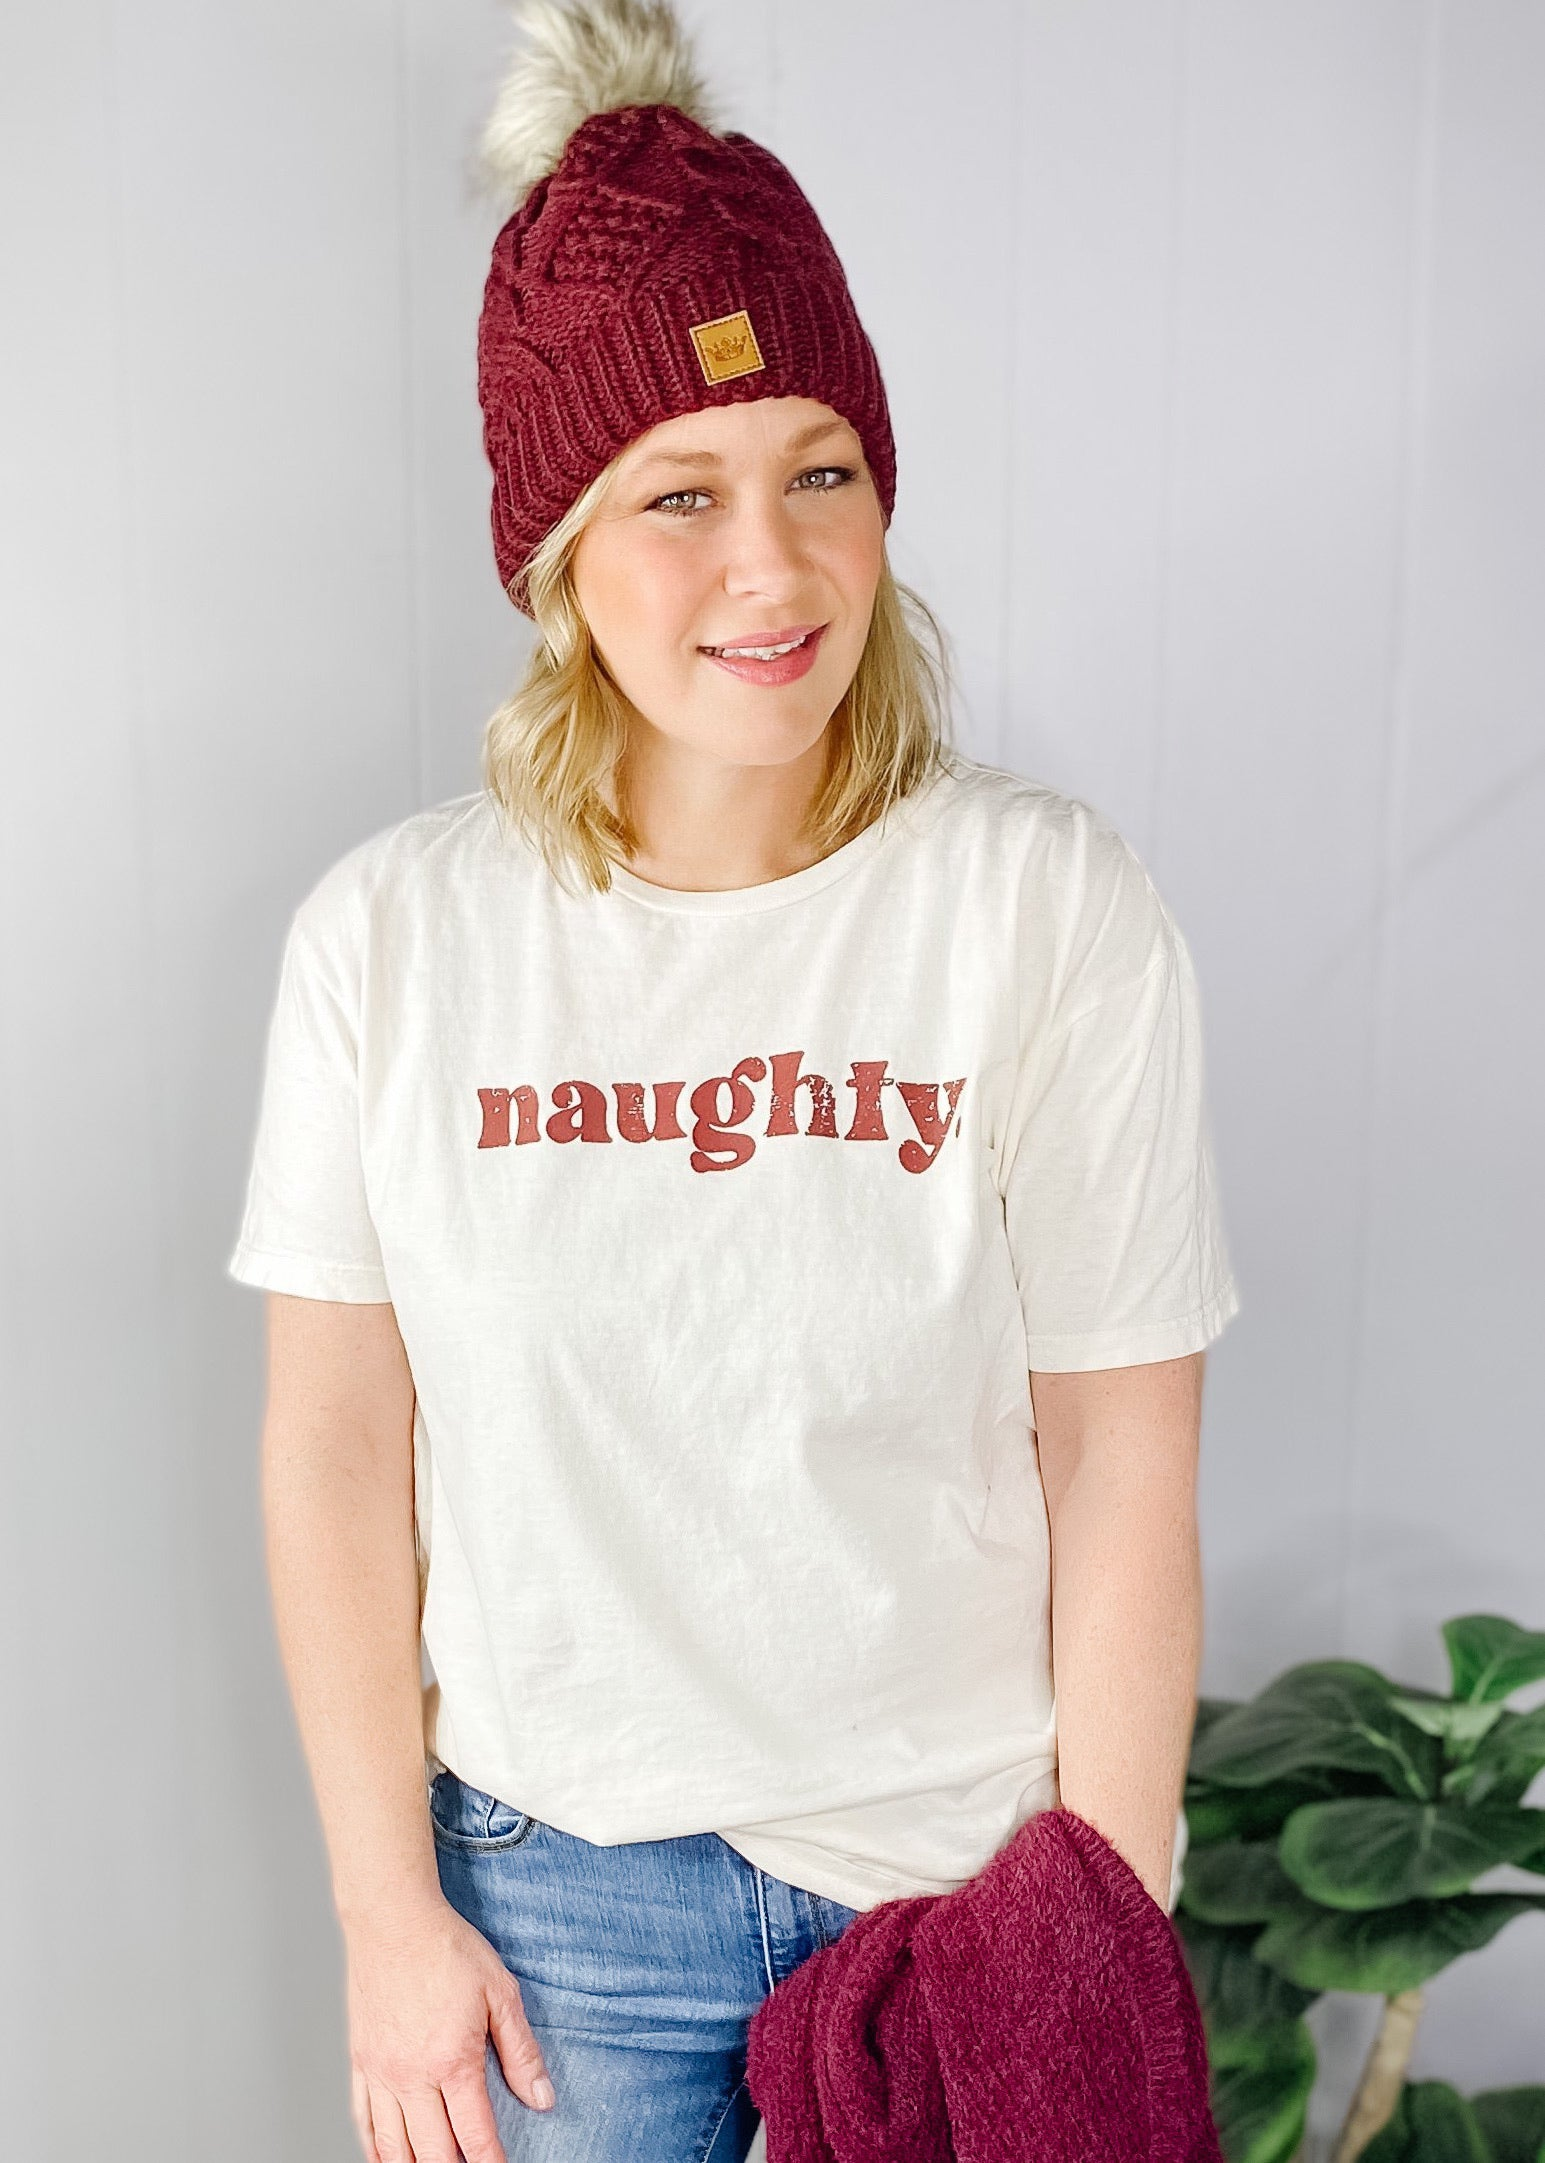 Naughty holiday tee in cream with dark red print. Available in small-x large